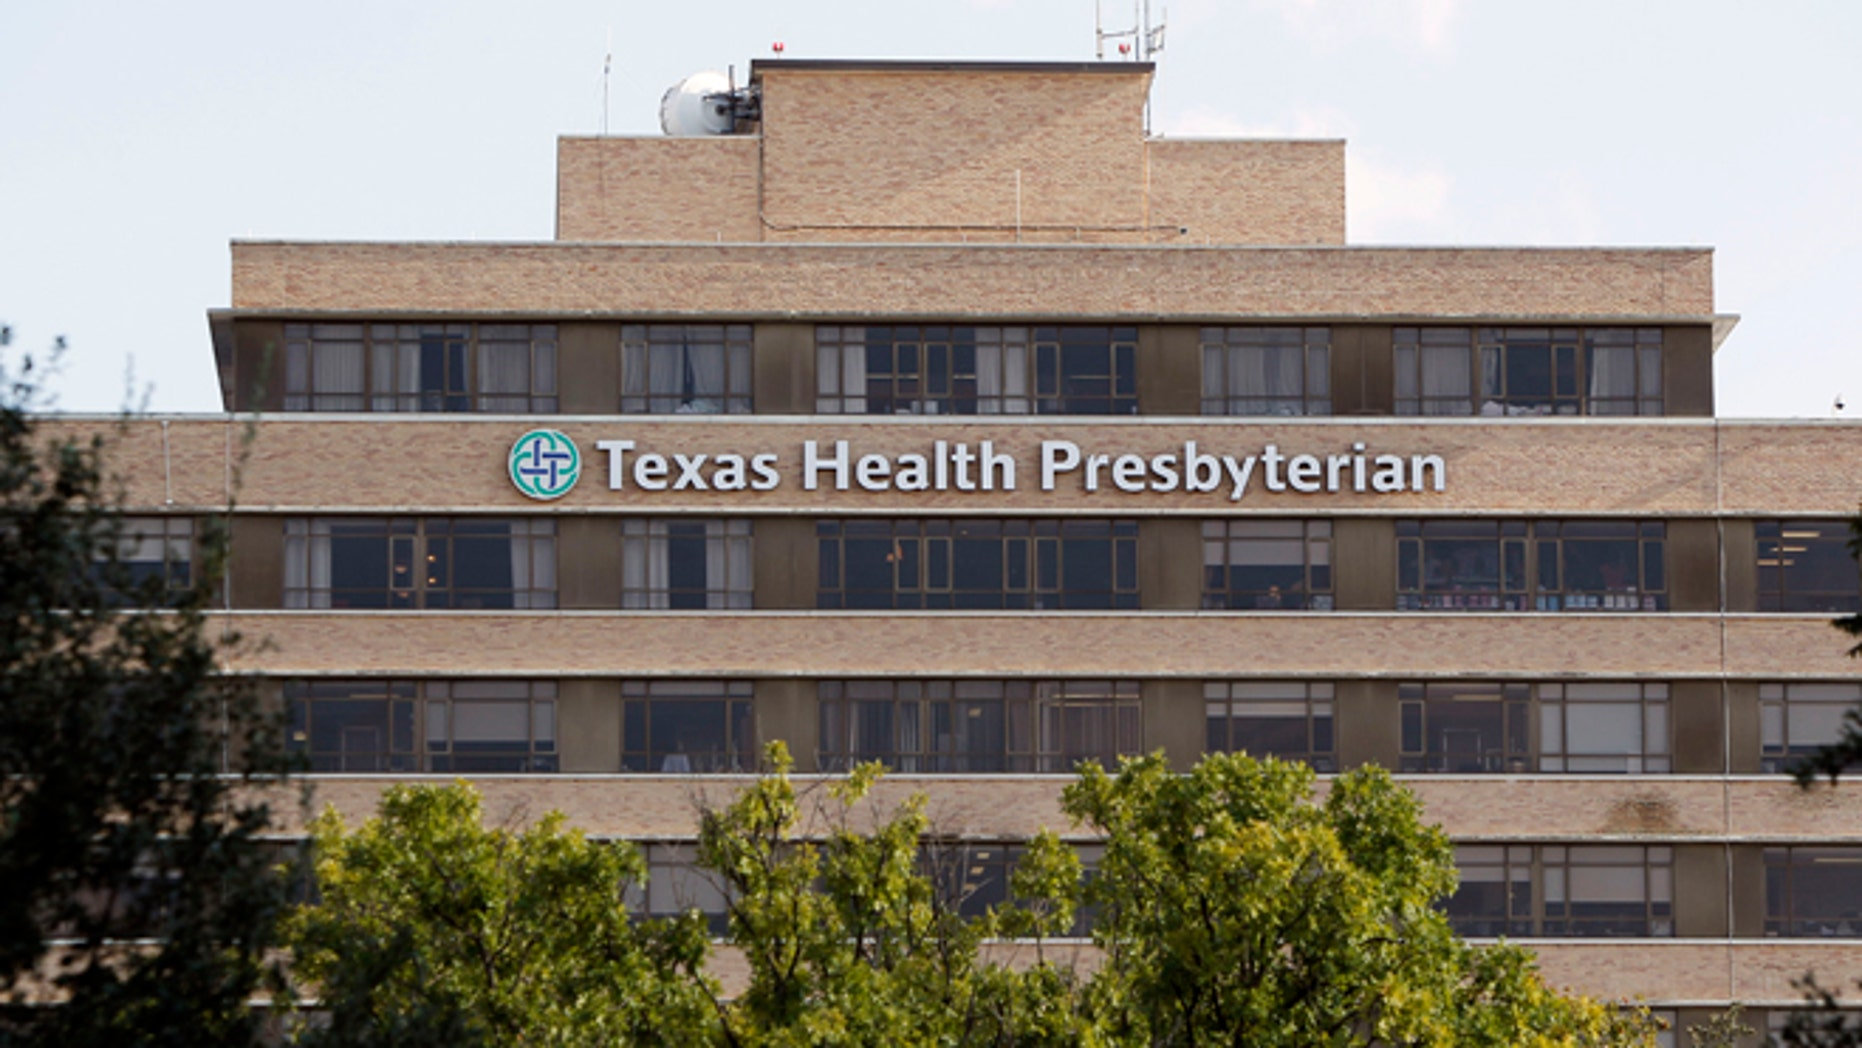 A general view of the Texas Health Presbyterian Hospital in Dallas, Texas September 30, 2014. U.S. health officials said on Tuesday the first patient infected with the deadly Ebola virus had been diagnosed in the country after flying from Liberia to Texas, in a new sign of how the outbreak ravaging West Africa can spread globally. The patient sought treatment six days after arriving in Texas on Sept. 20, Dr. Thomas Frieden, director of the U.S. Centers for Disease Control and Prevention (CDC), told reporters on Tuesday. He was admitted two days later to an isolation room at Texas Health Presbyterian Hospital in Dallas.  REUTERS/Brandon Wade